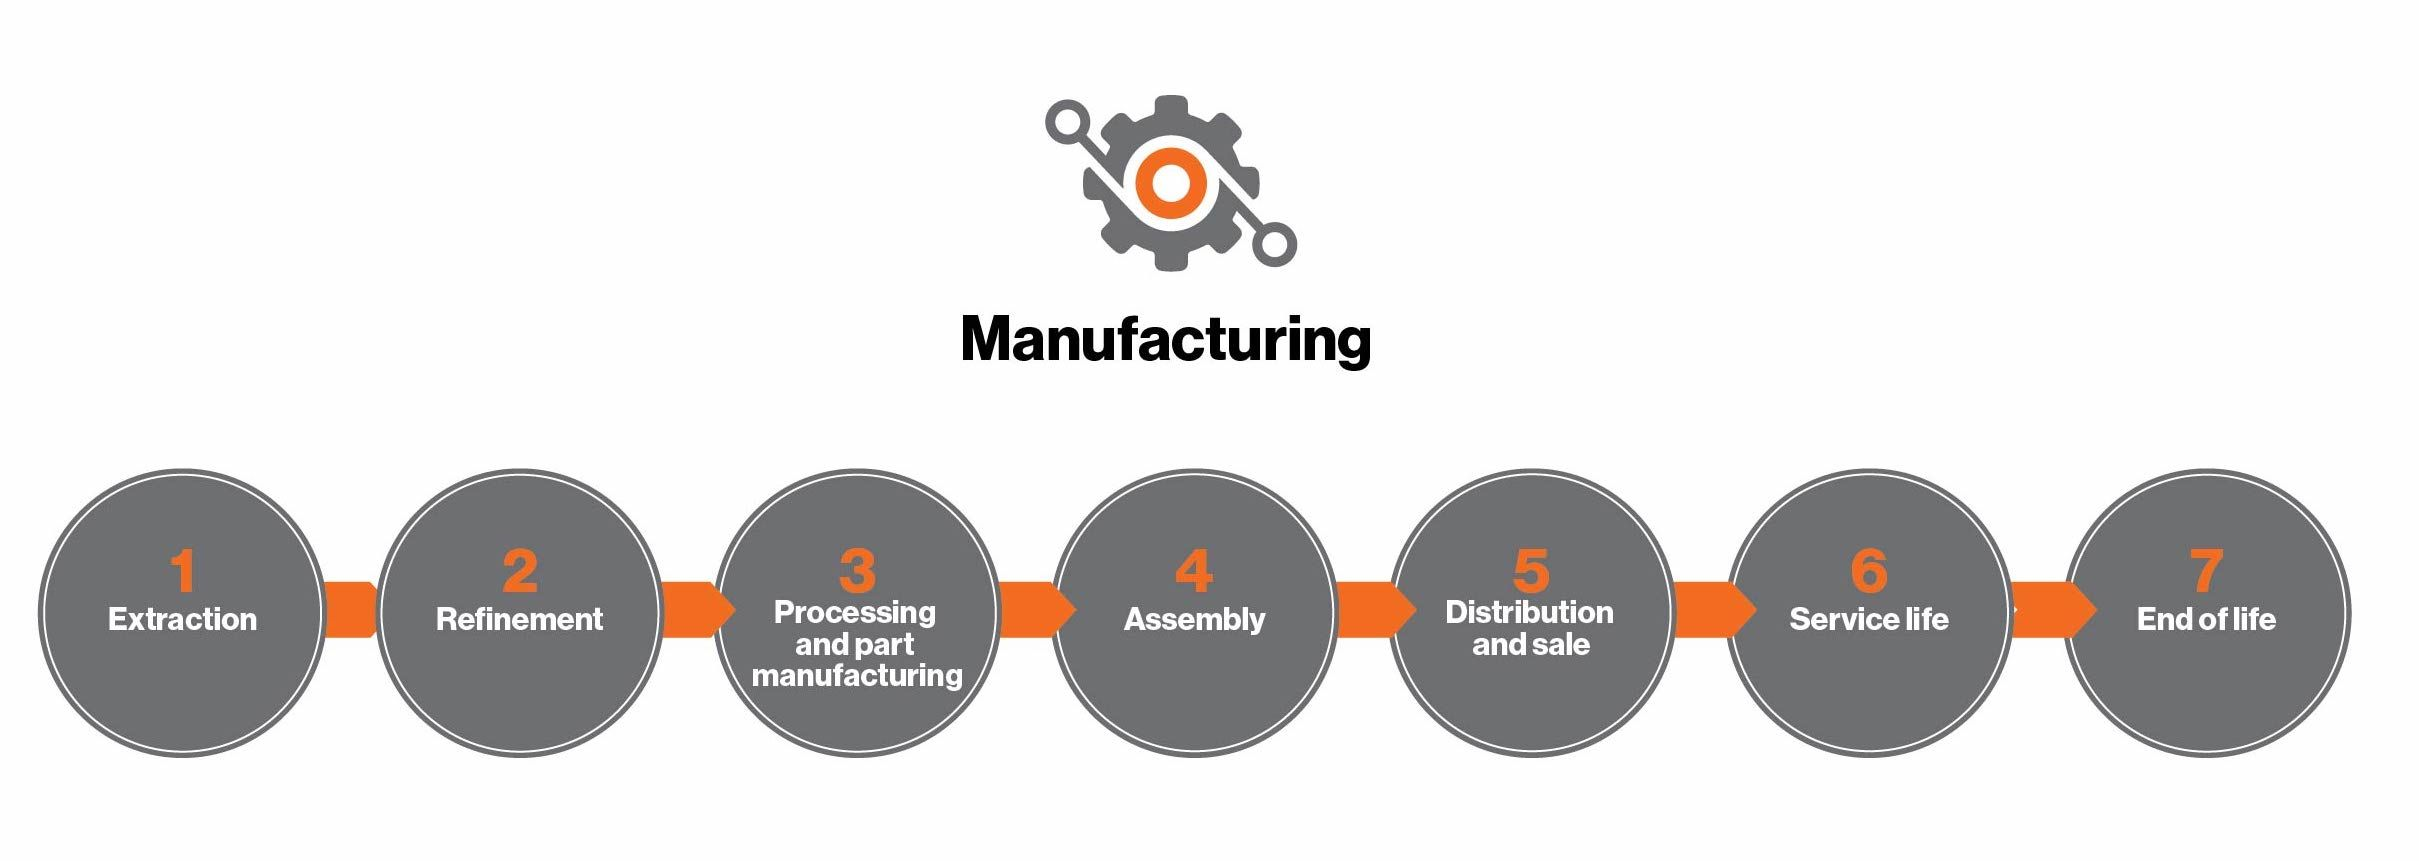 The seven steps of manufacturing